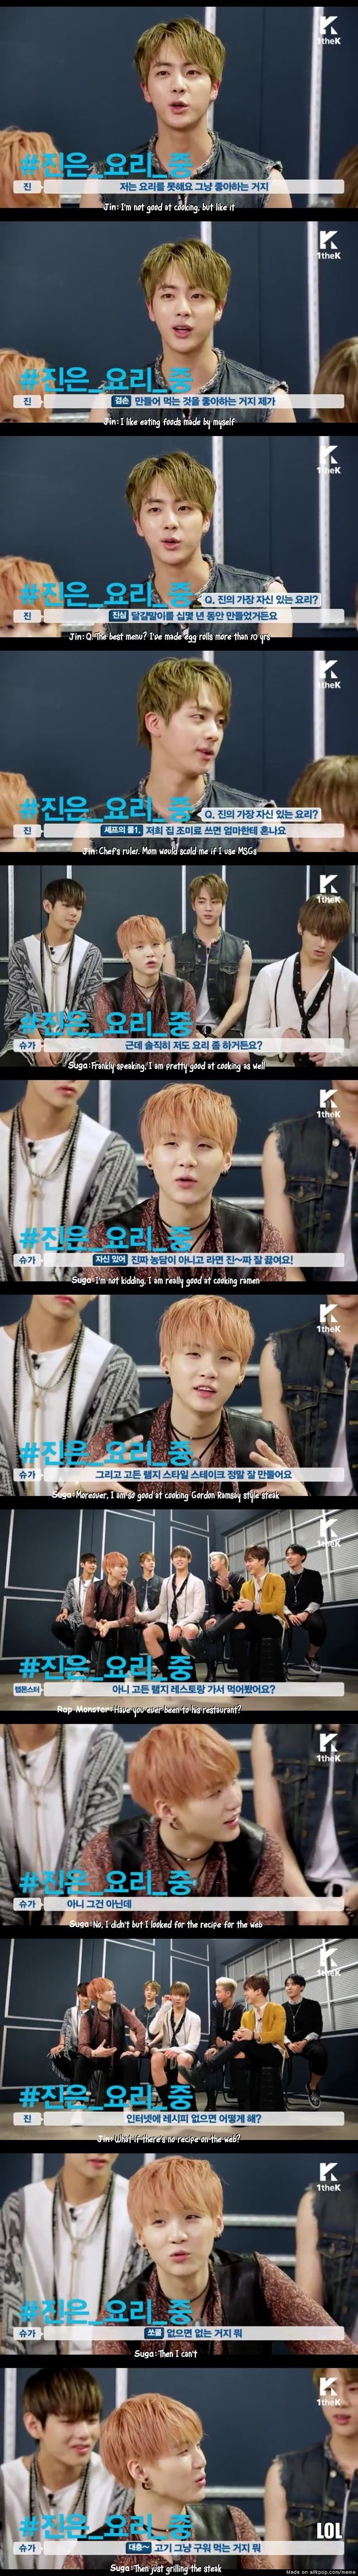 So I mean, idk but yet again here I mention Suga's swagger. I mean, isn't Jin always cooking?!?! I swear , every friggn Bangtan Bomb Jin's in the cooking, but I mean I guess the fact that Jin's in the kitchen is better than Rap Mon or V or something ... the only thing I've seen Suga cook is a cake - actually NO, he decorated the cake. YET the end result was swag.